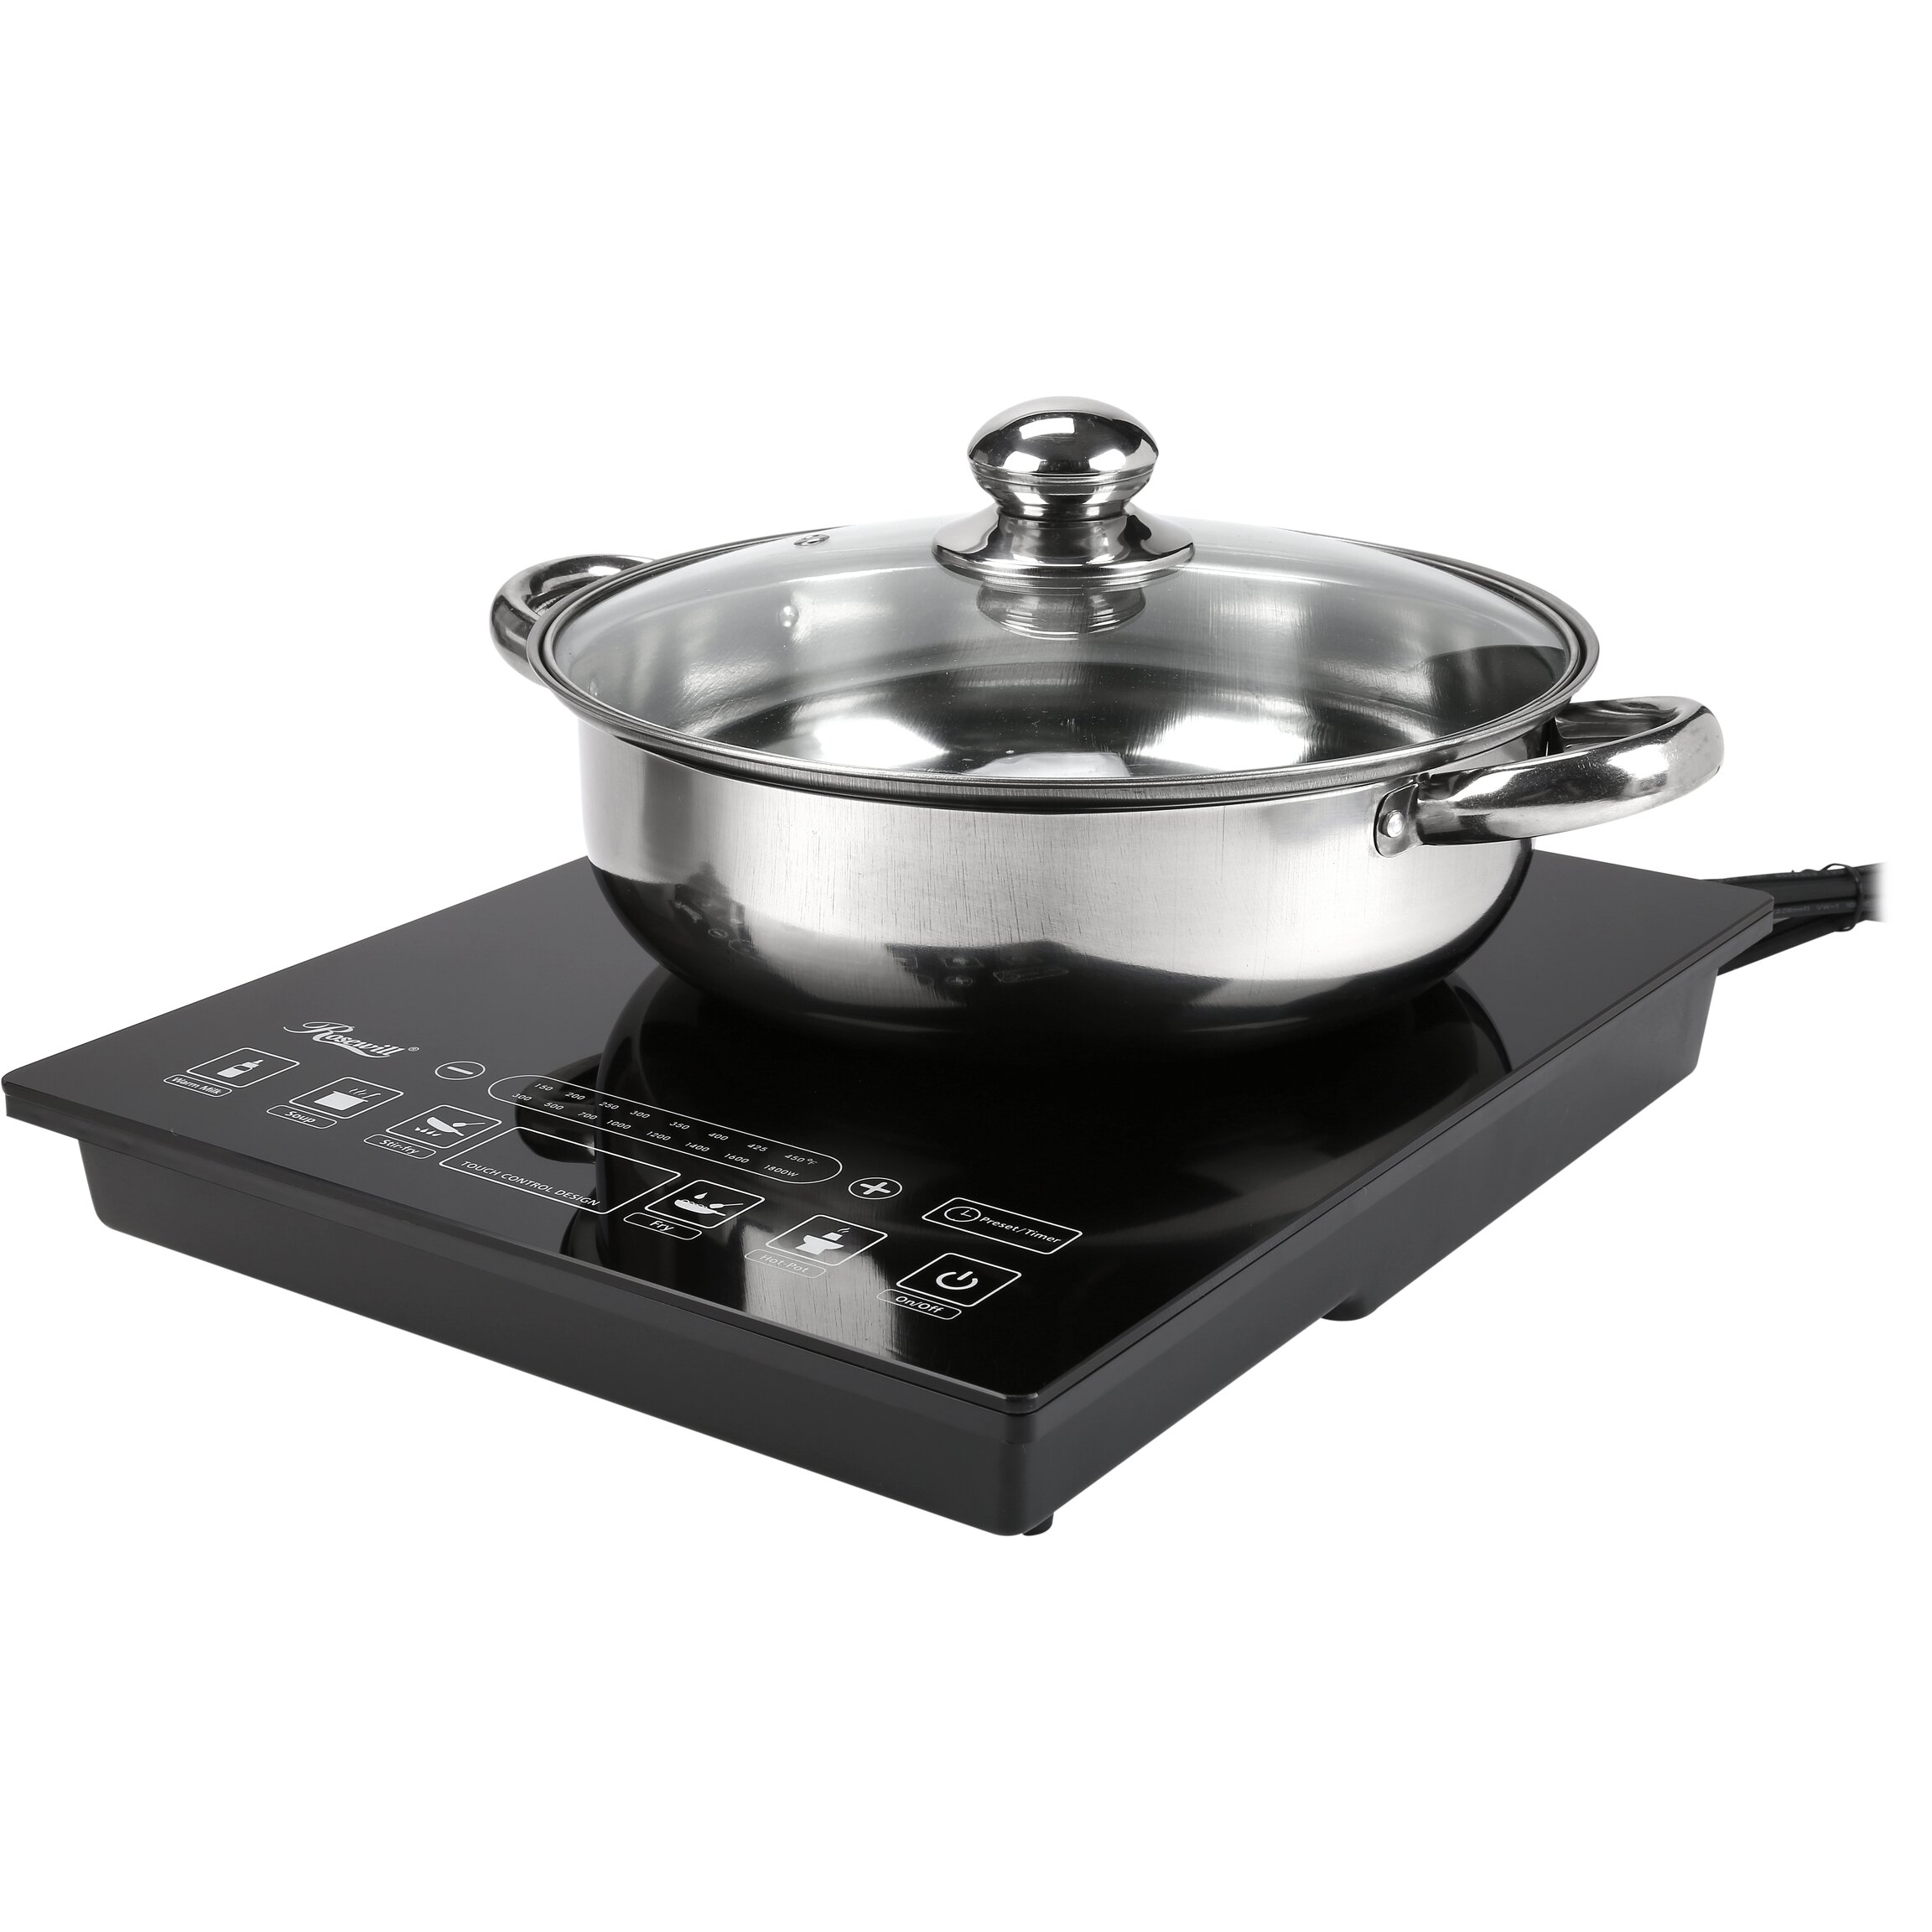 "Rosewill 11.73"" Electric Induction Cooktop With 1 Burner"